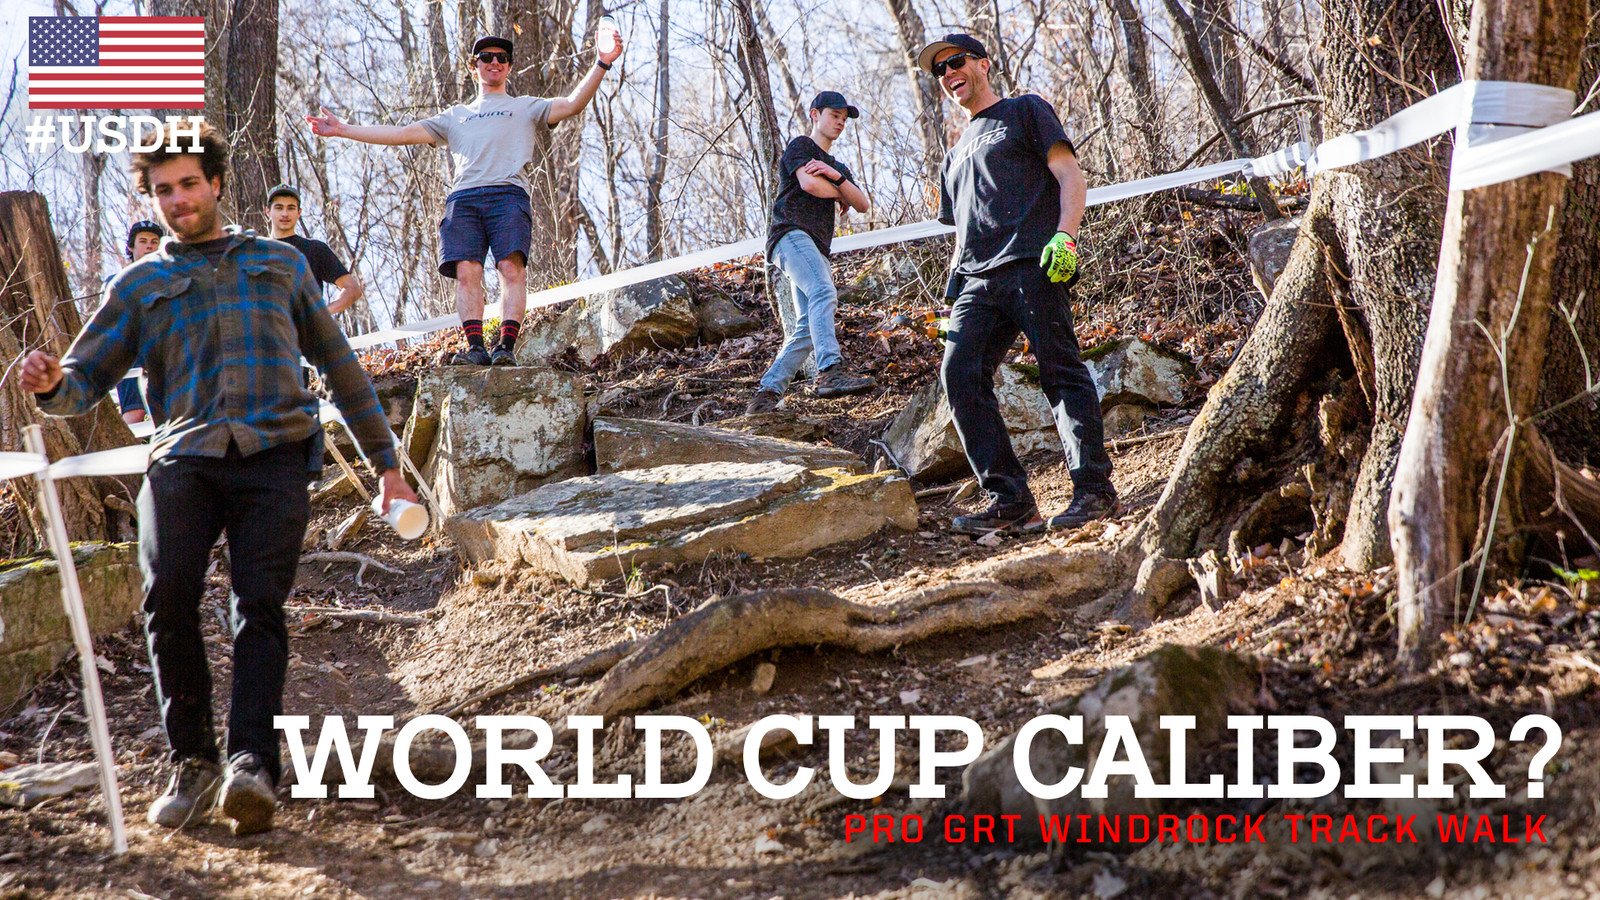 World Cup Caliber? Pro GRT Windrock Track Walk